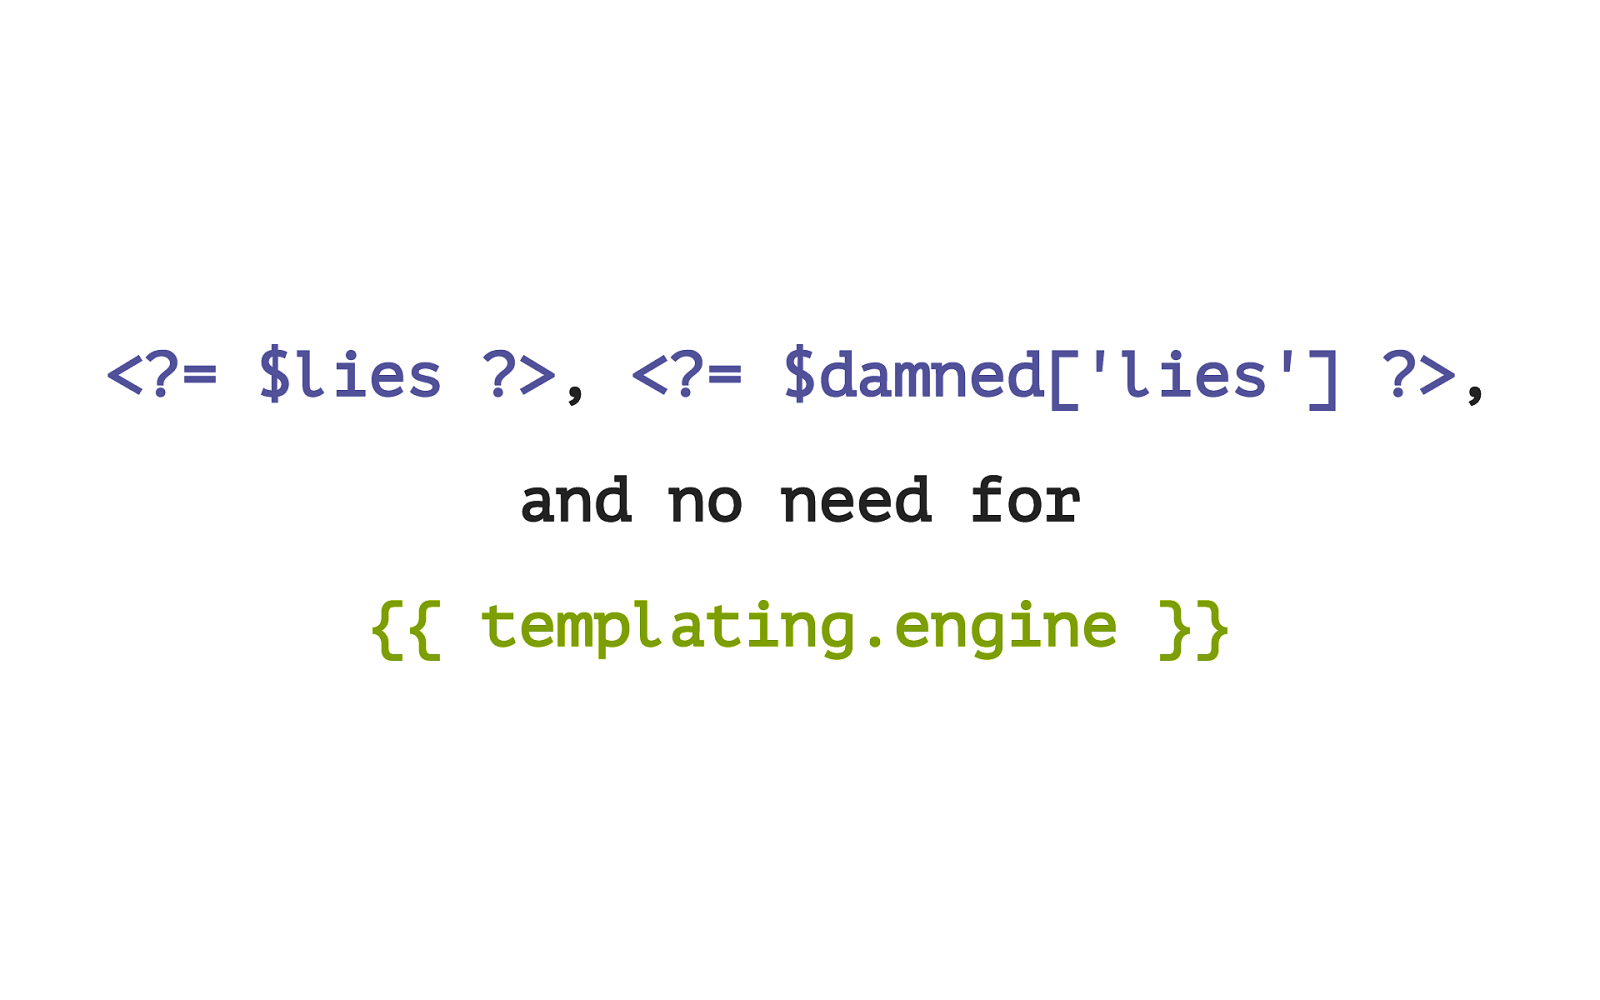 Lies, Damned Lies, and No Need for Templating Engine